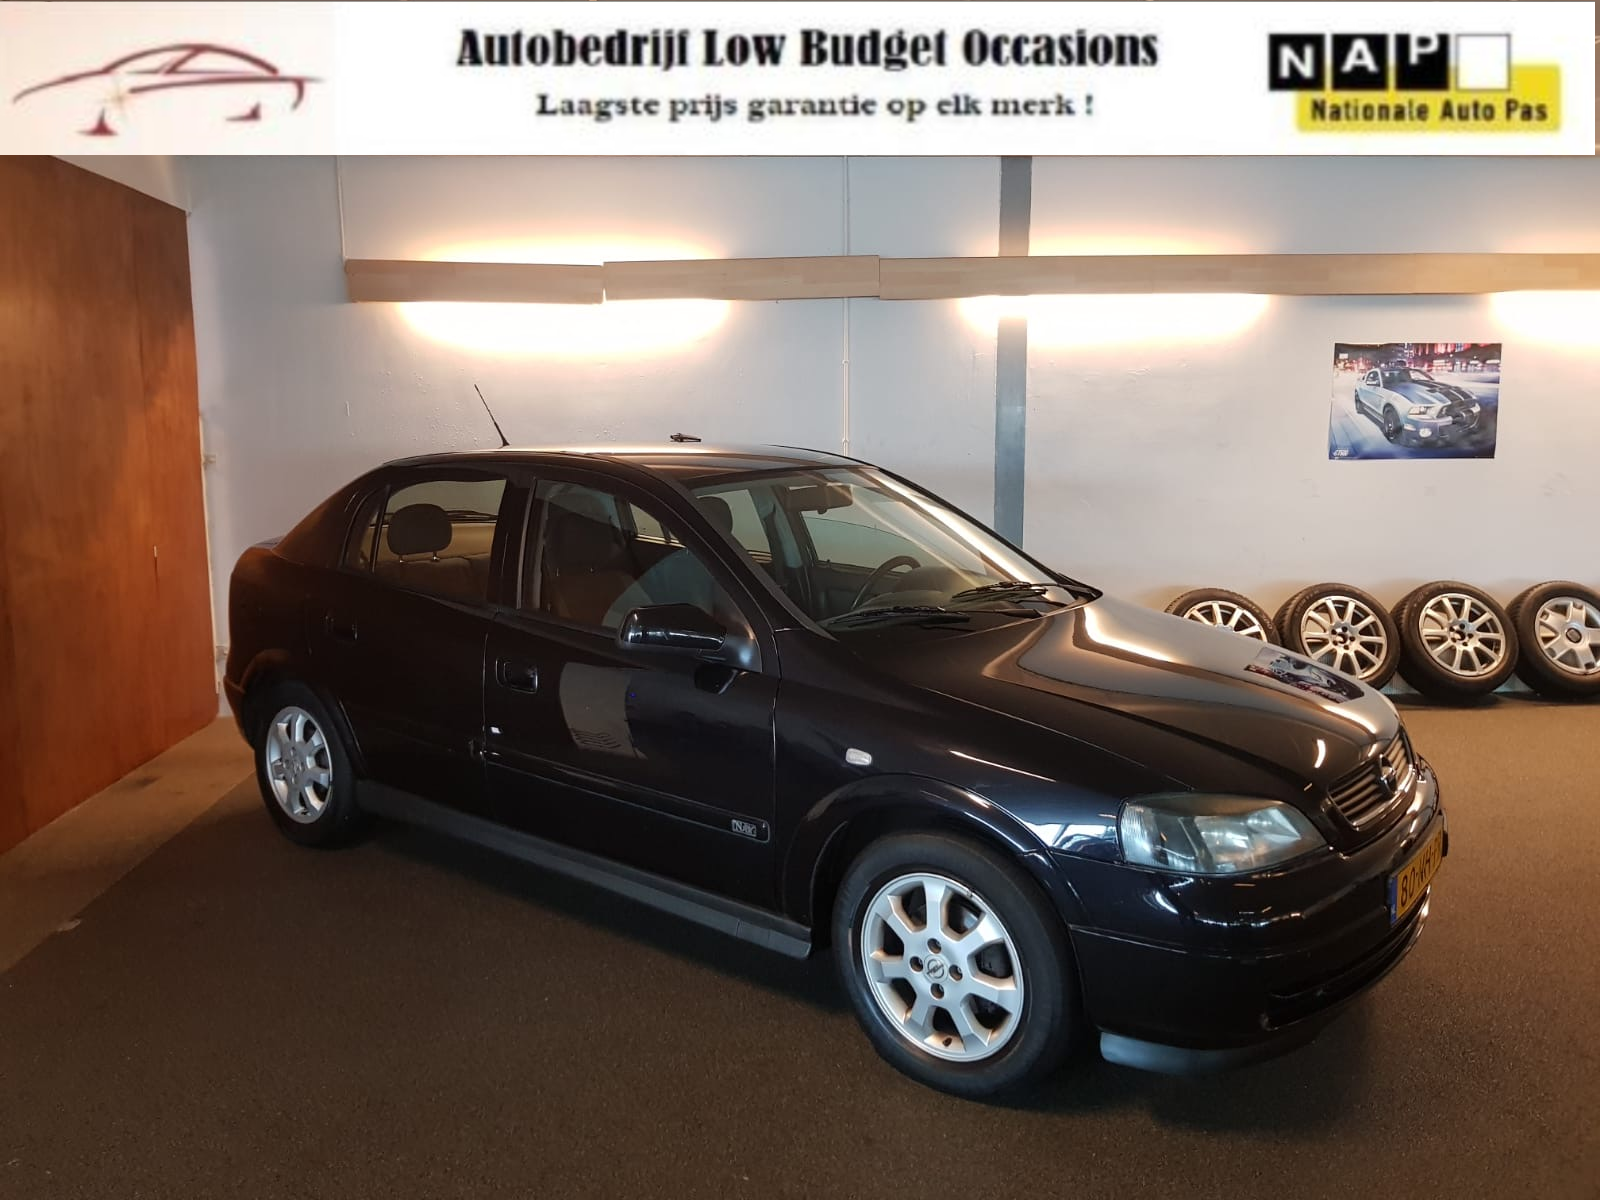 Opel Astra occasion - Low Budget Occasions